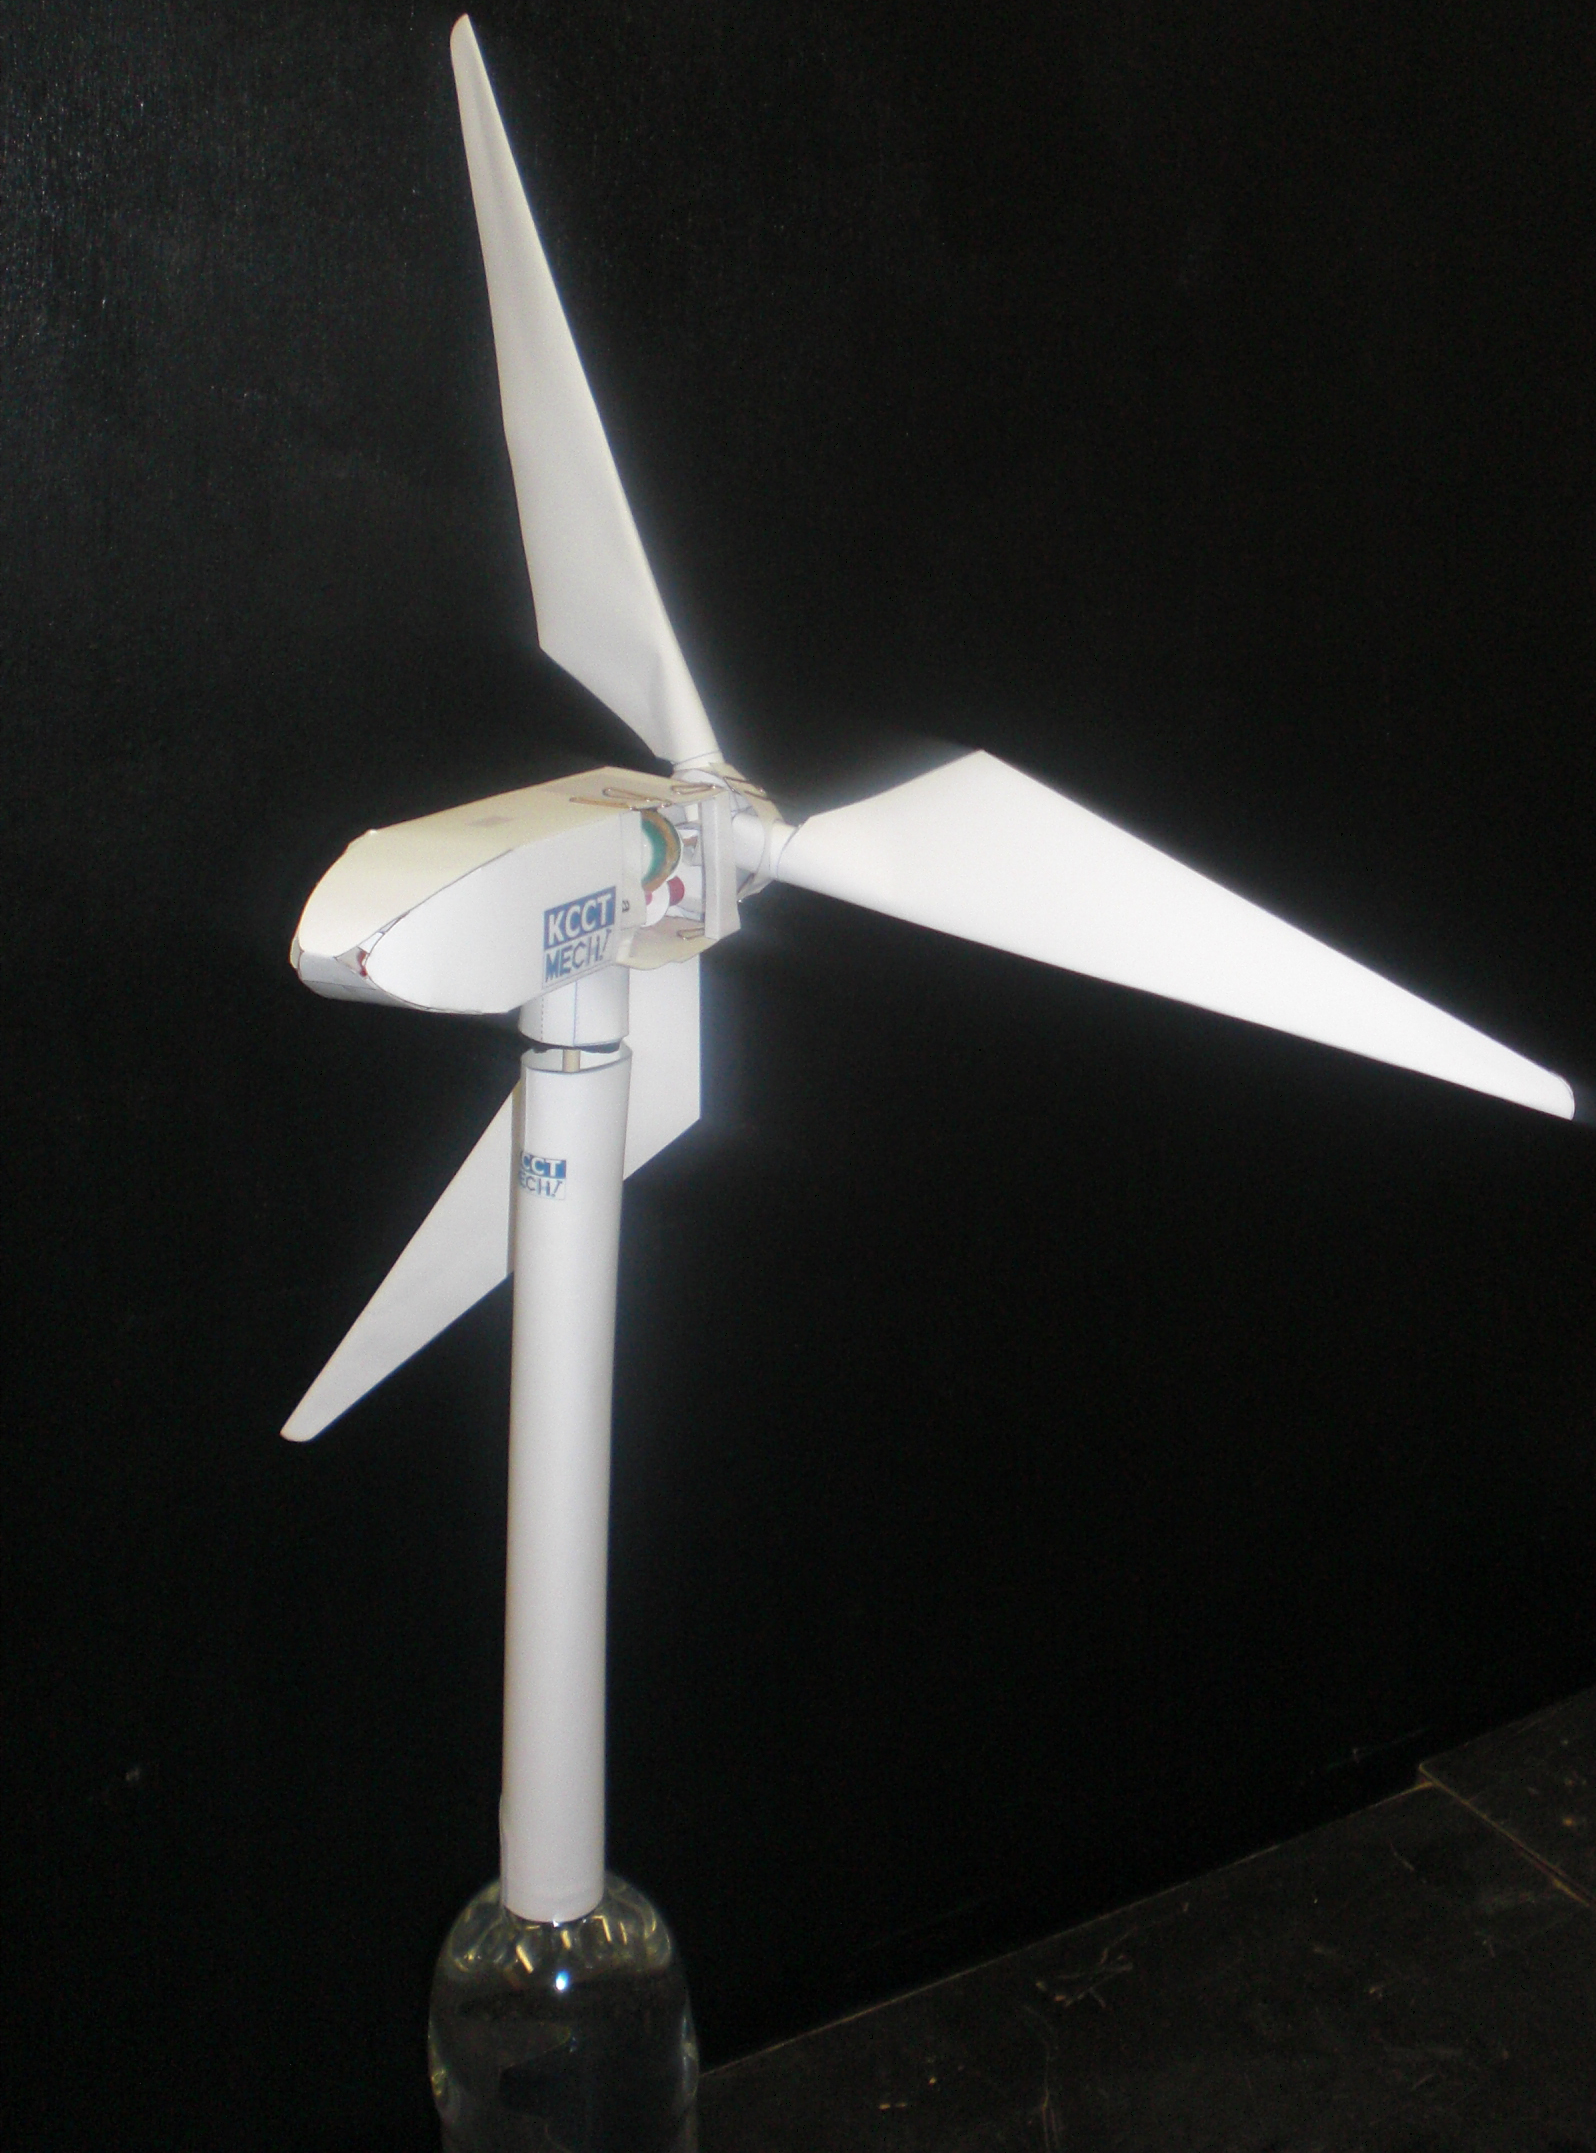 how to buy a wind turbine for home